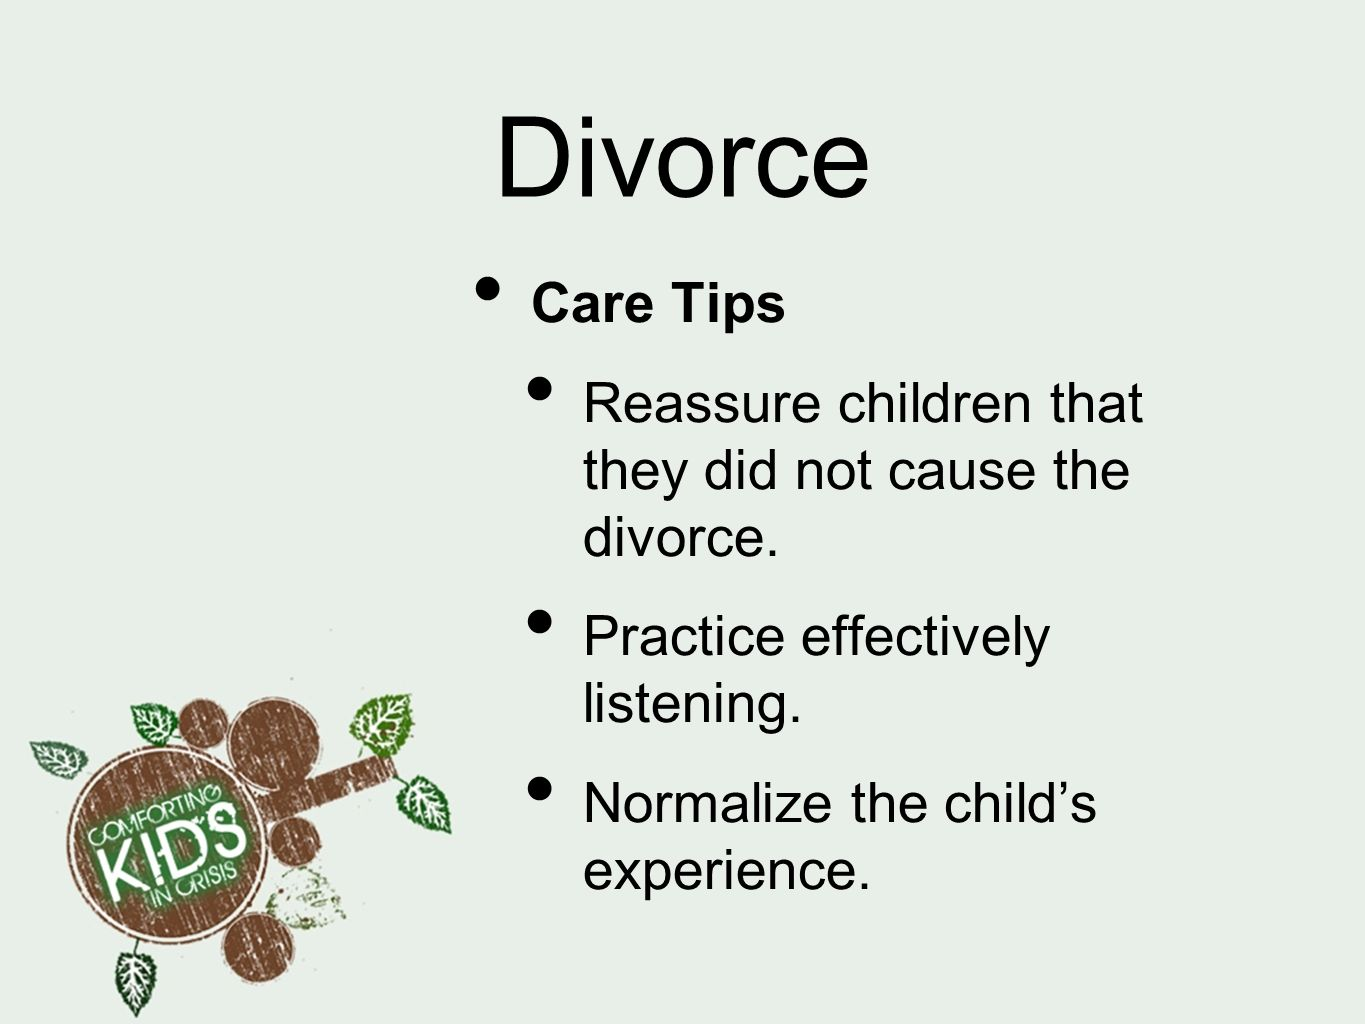 Divorce Care Tips. Reassure children that they did not cause the divorce. Practice effectively listening.